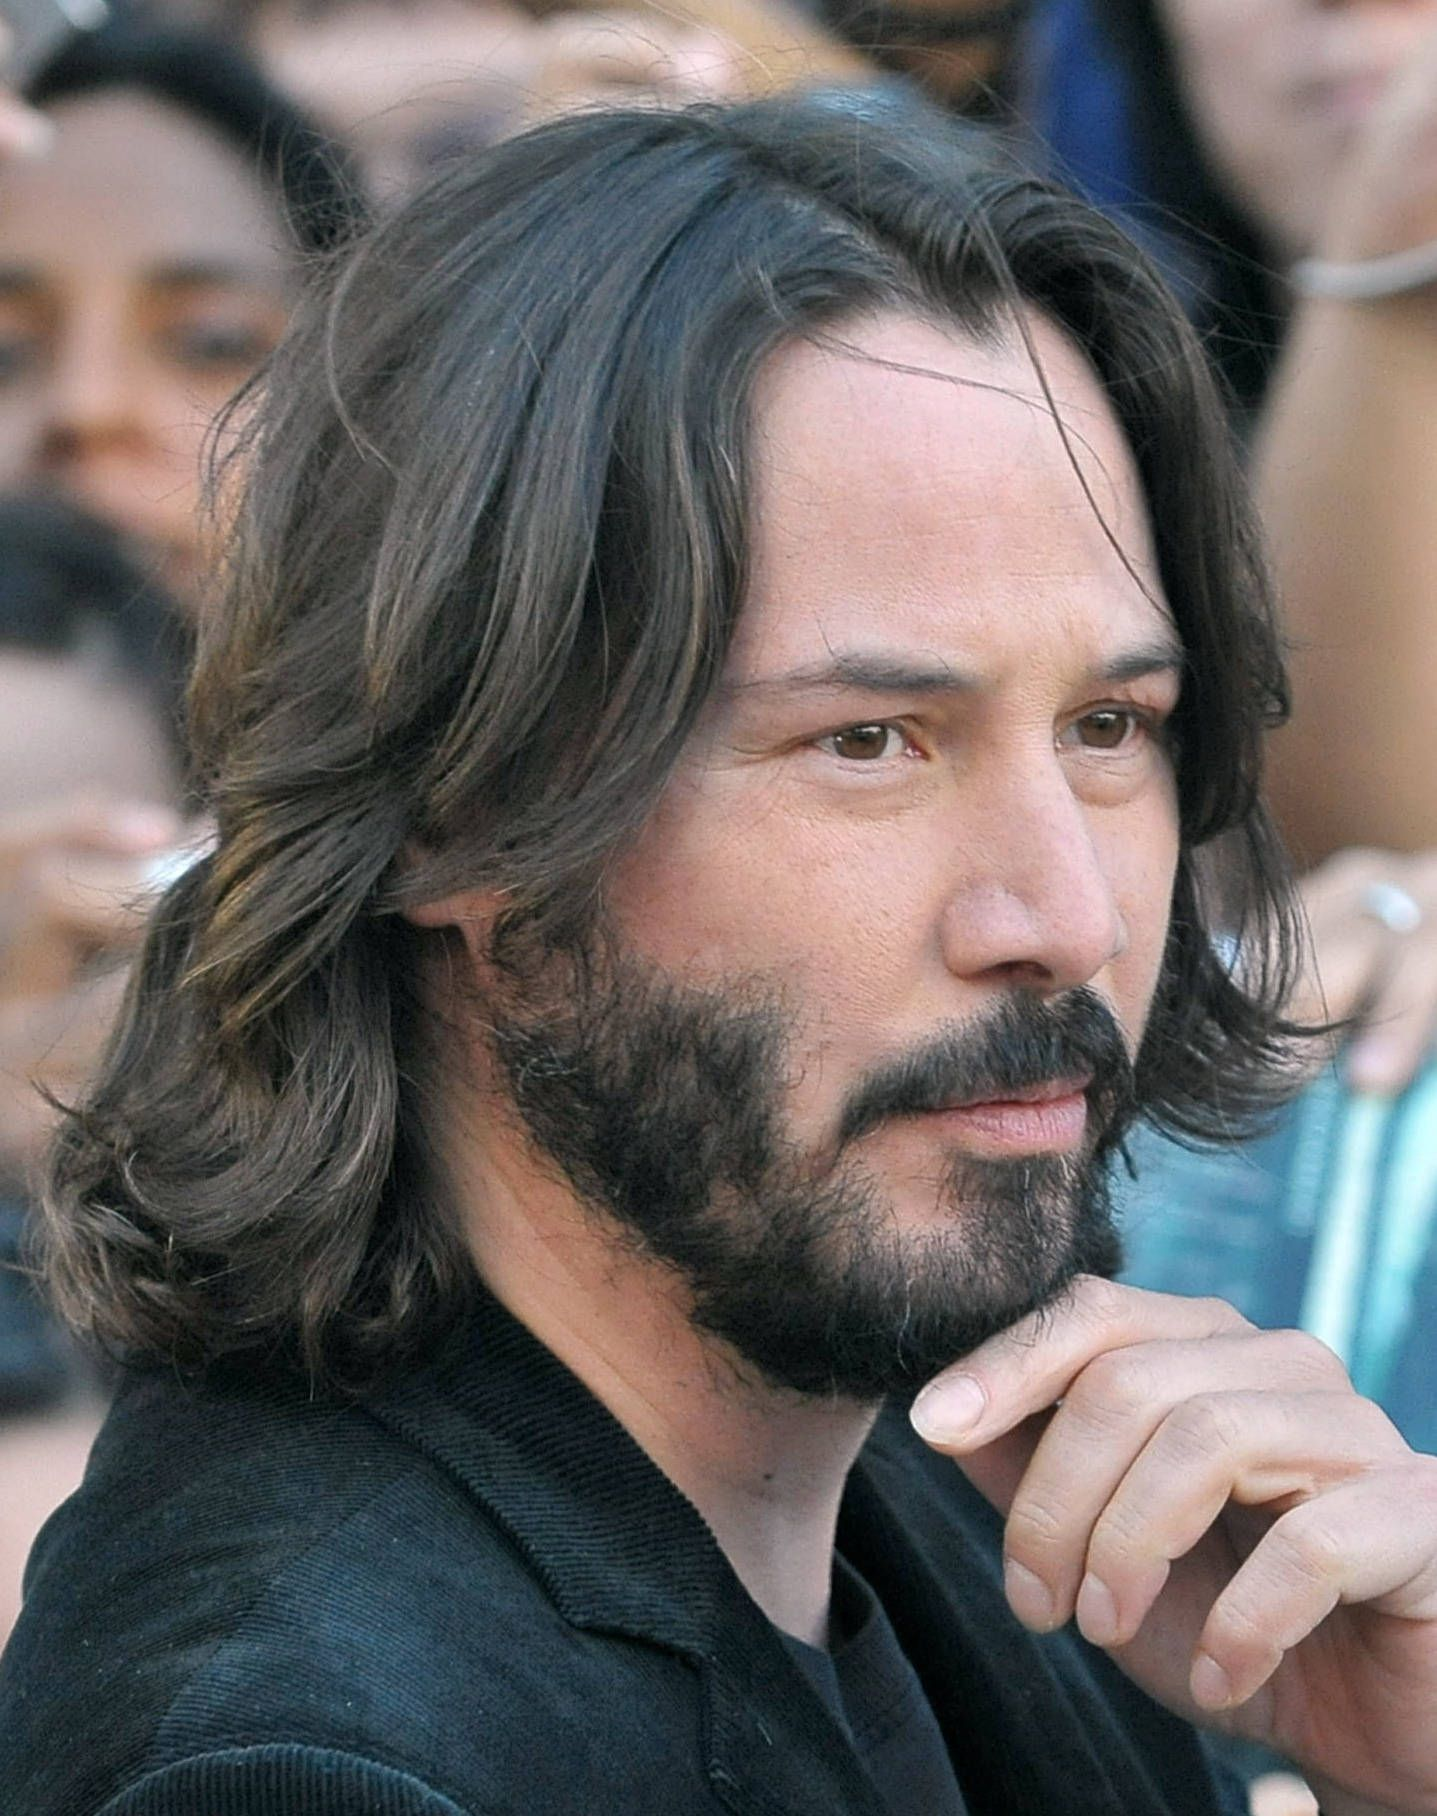 Men Long Hairstyles If You Want To Grow Your Hair Out Follow The Example Of These